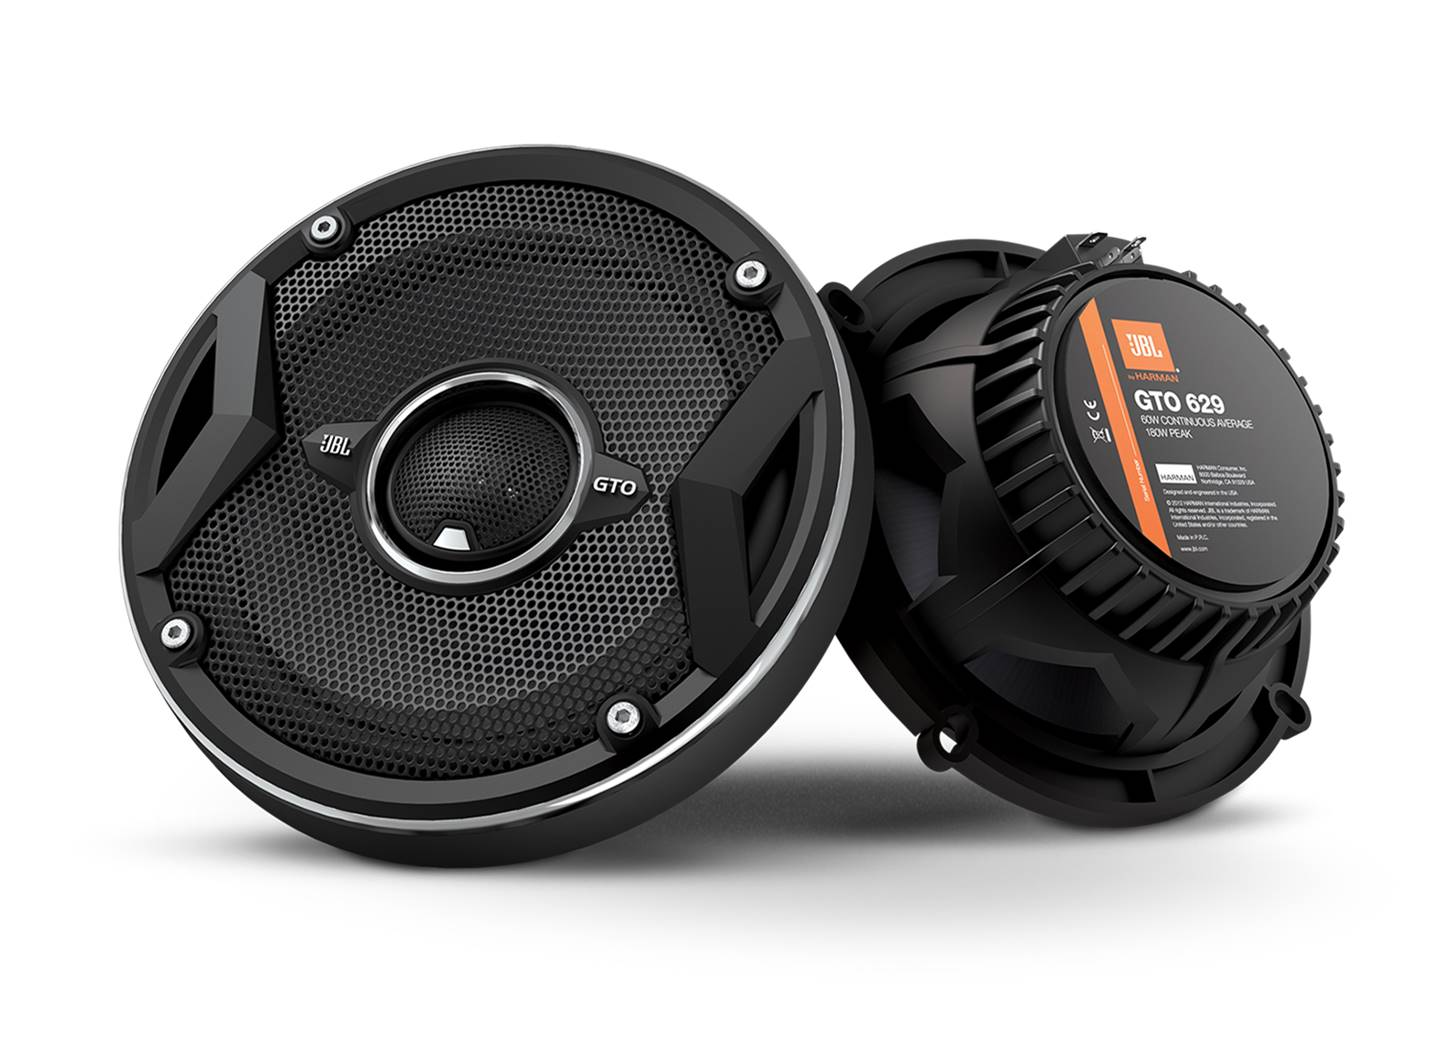 JBL GTO629 Loudest Car Speakers